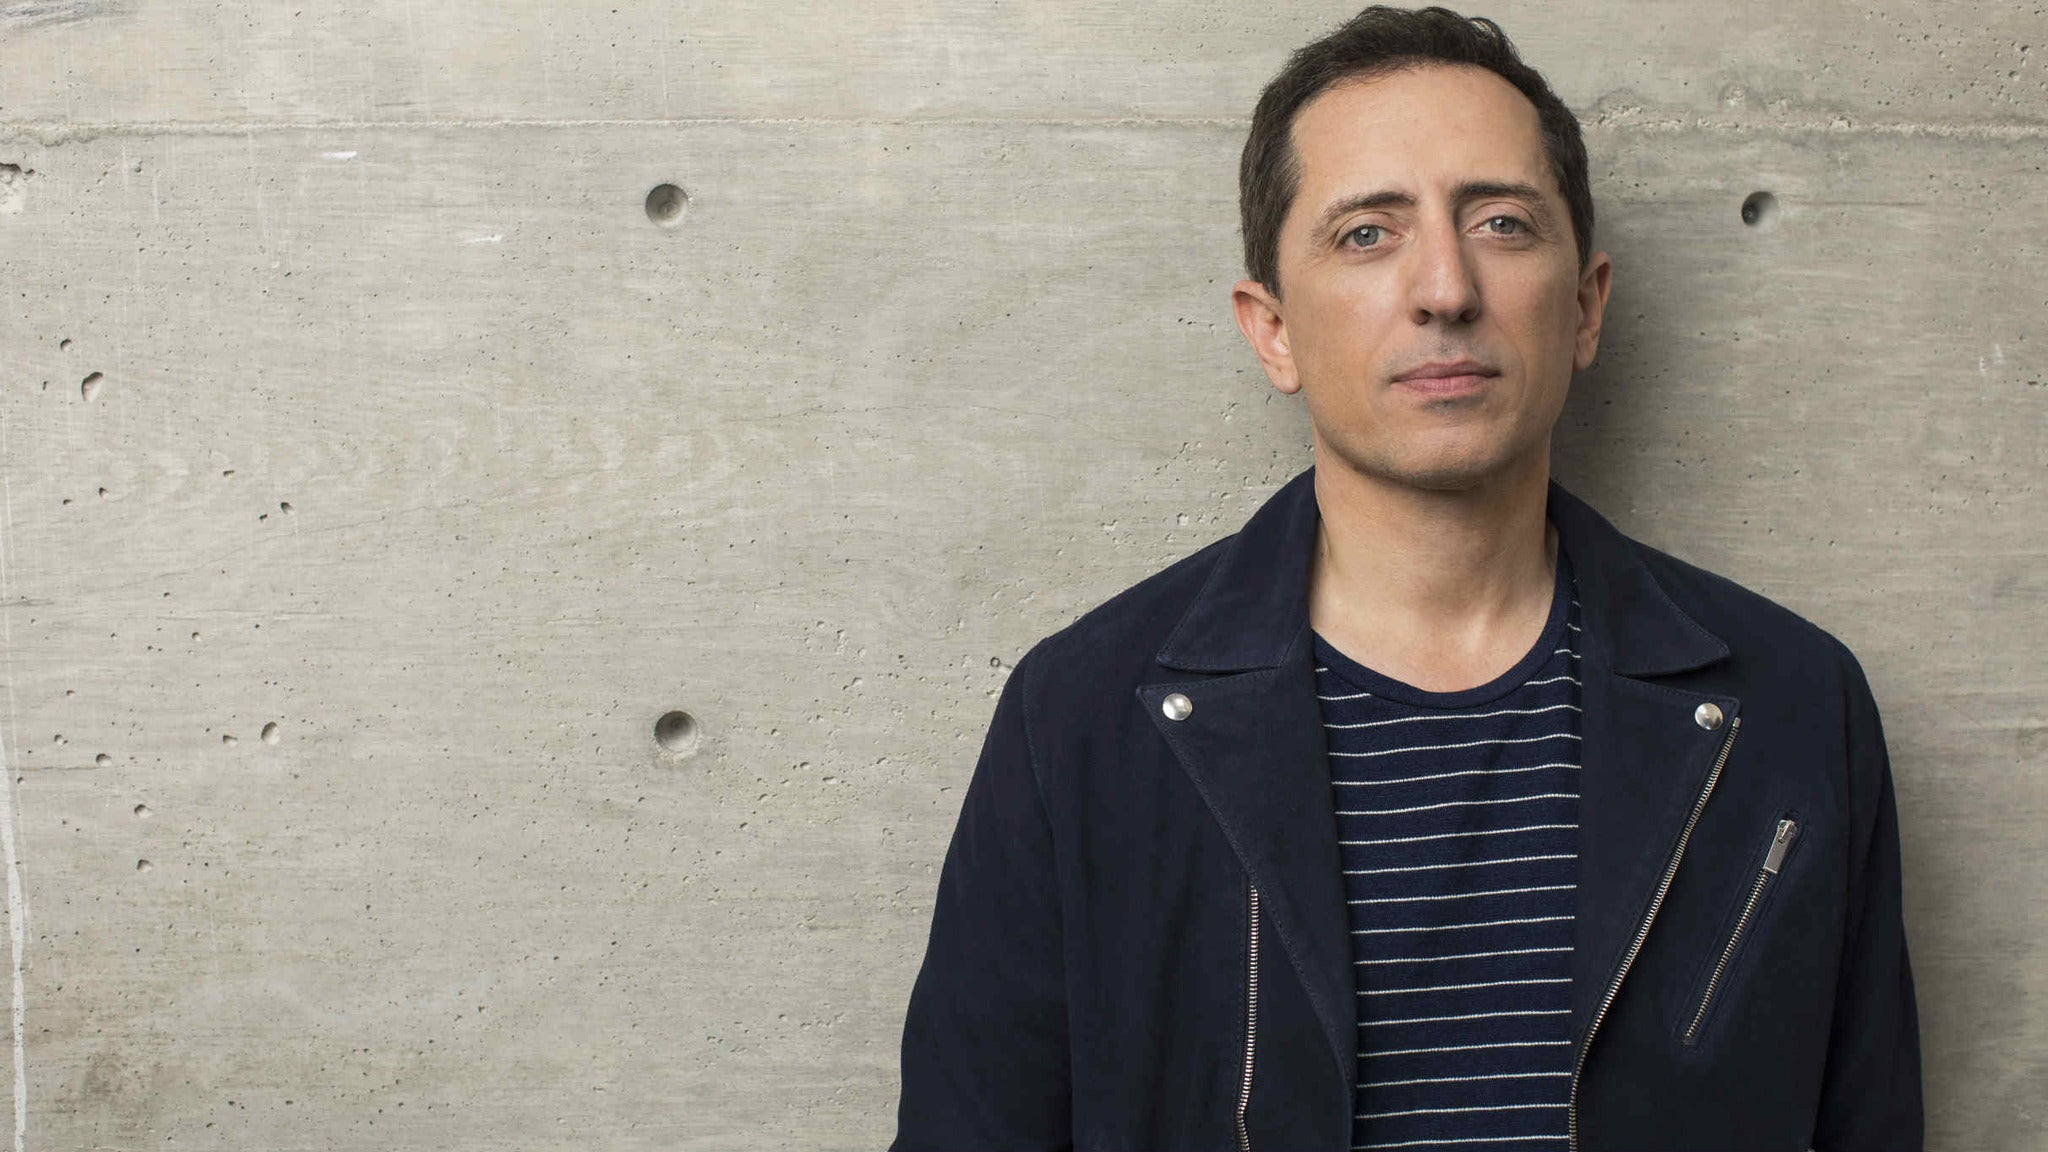 SORRY, THIS EVENT IS NO LONGER ACTIVE<br>Gad Elmaleh at Hollywood Improv (The Main Room) - Hollywood, CA 90046